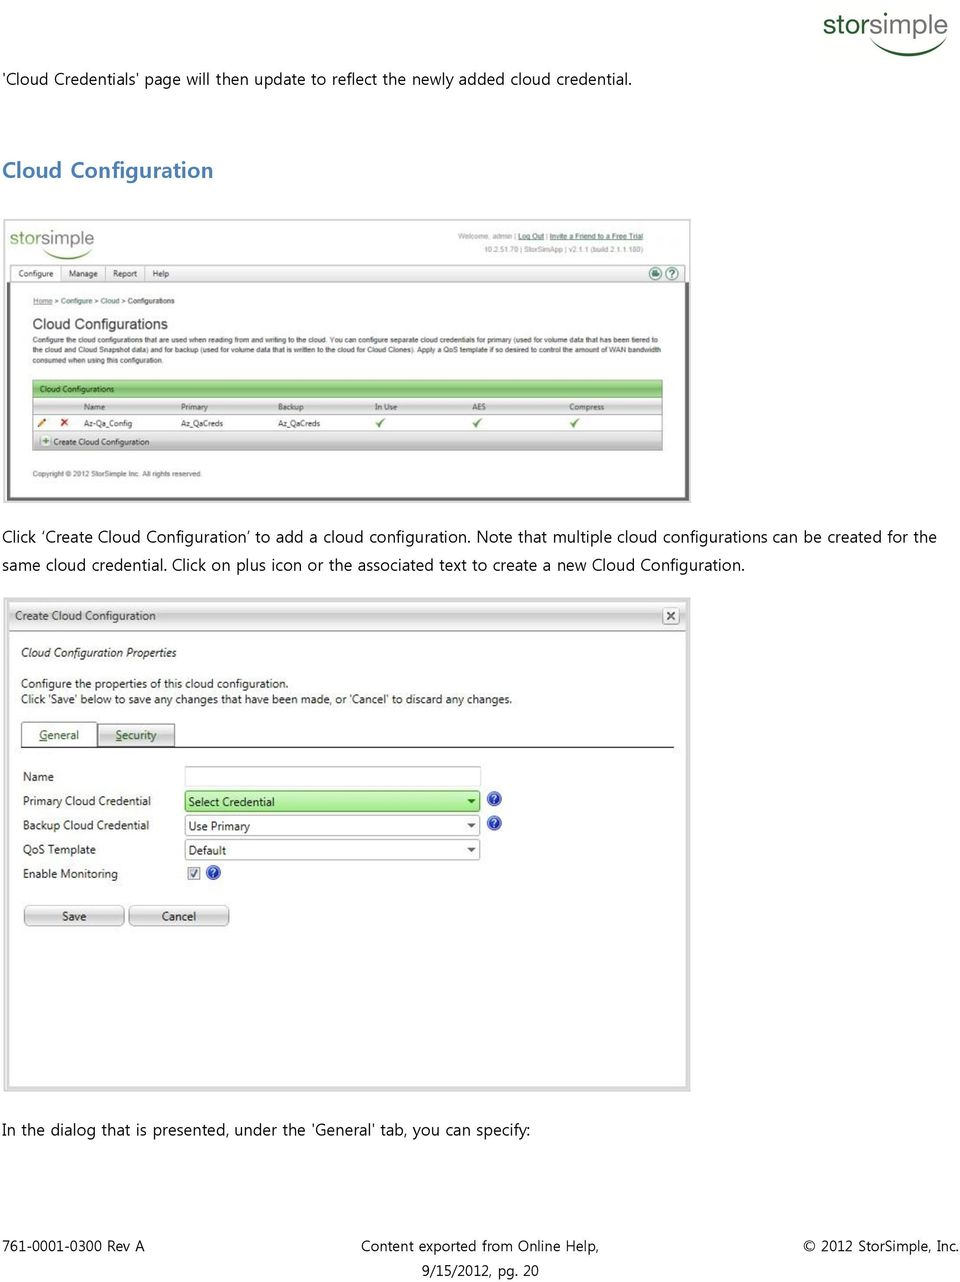 Note that multiple cloud configurations can be created for the same cloud credential.